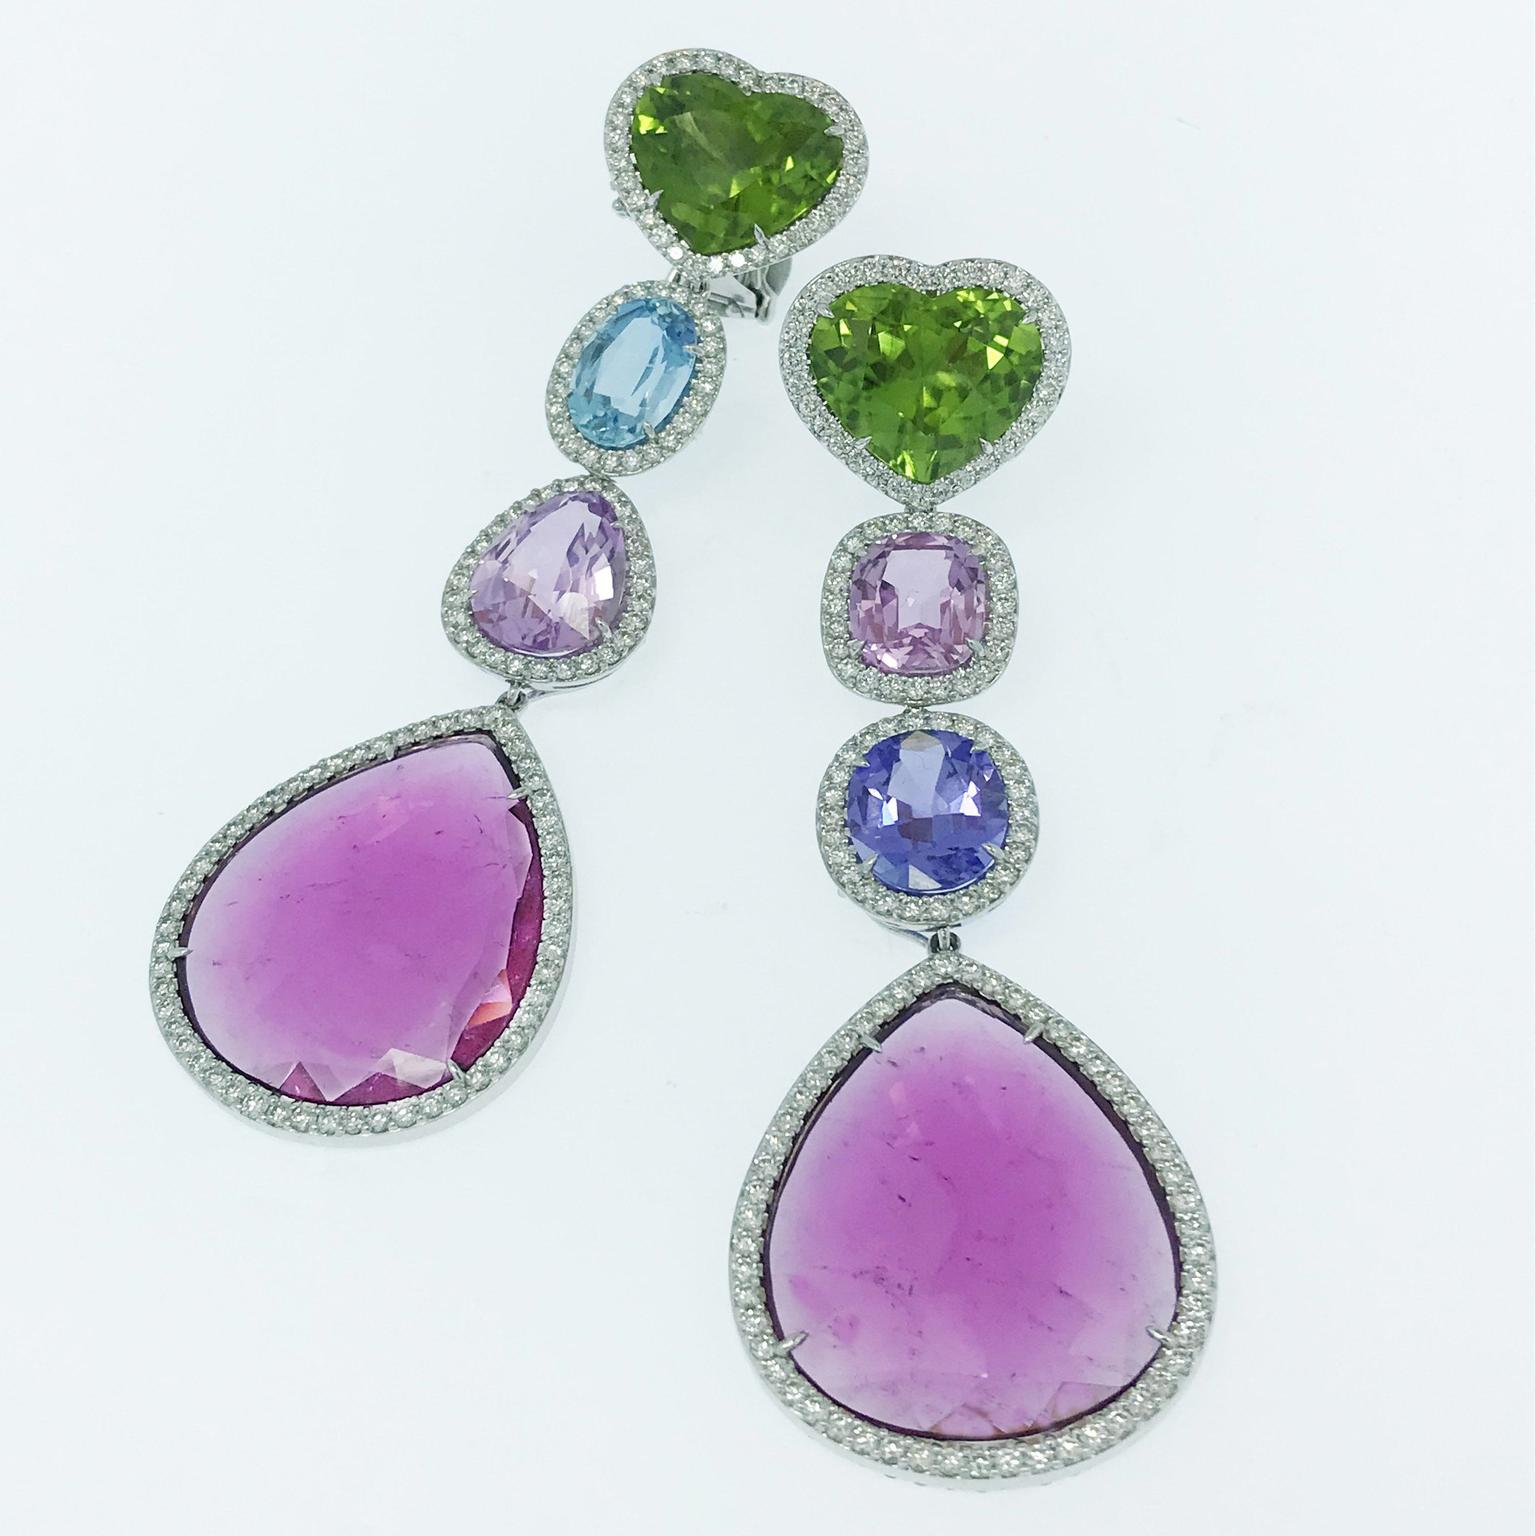 Multi stone drop earrings 010301 from Margot McKinney